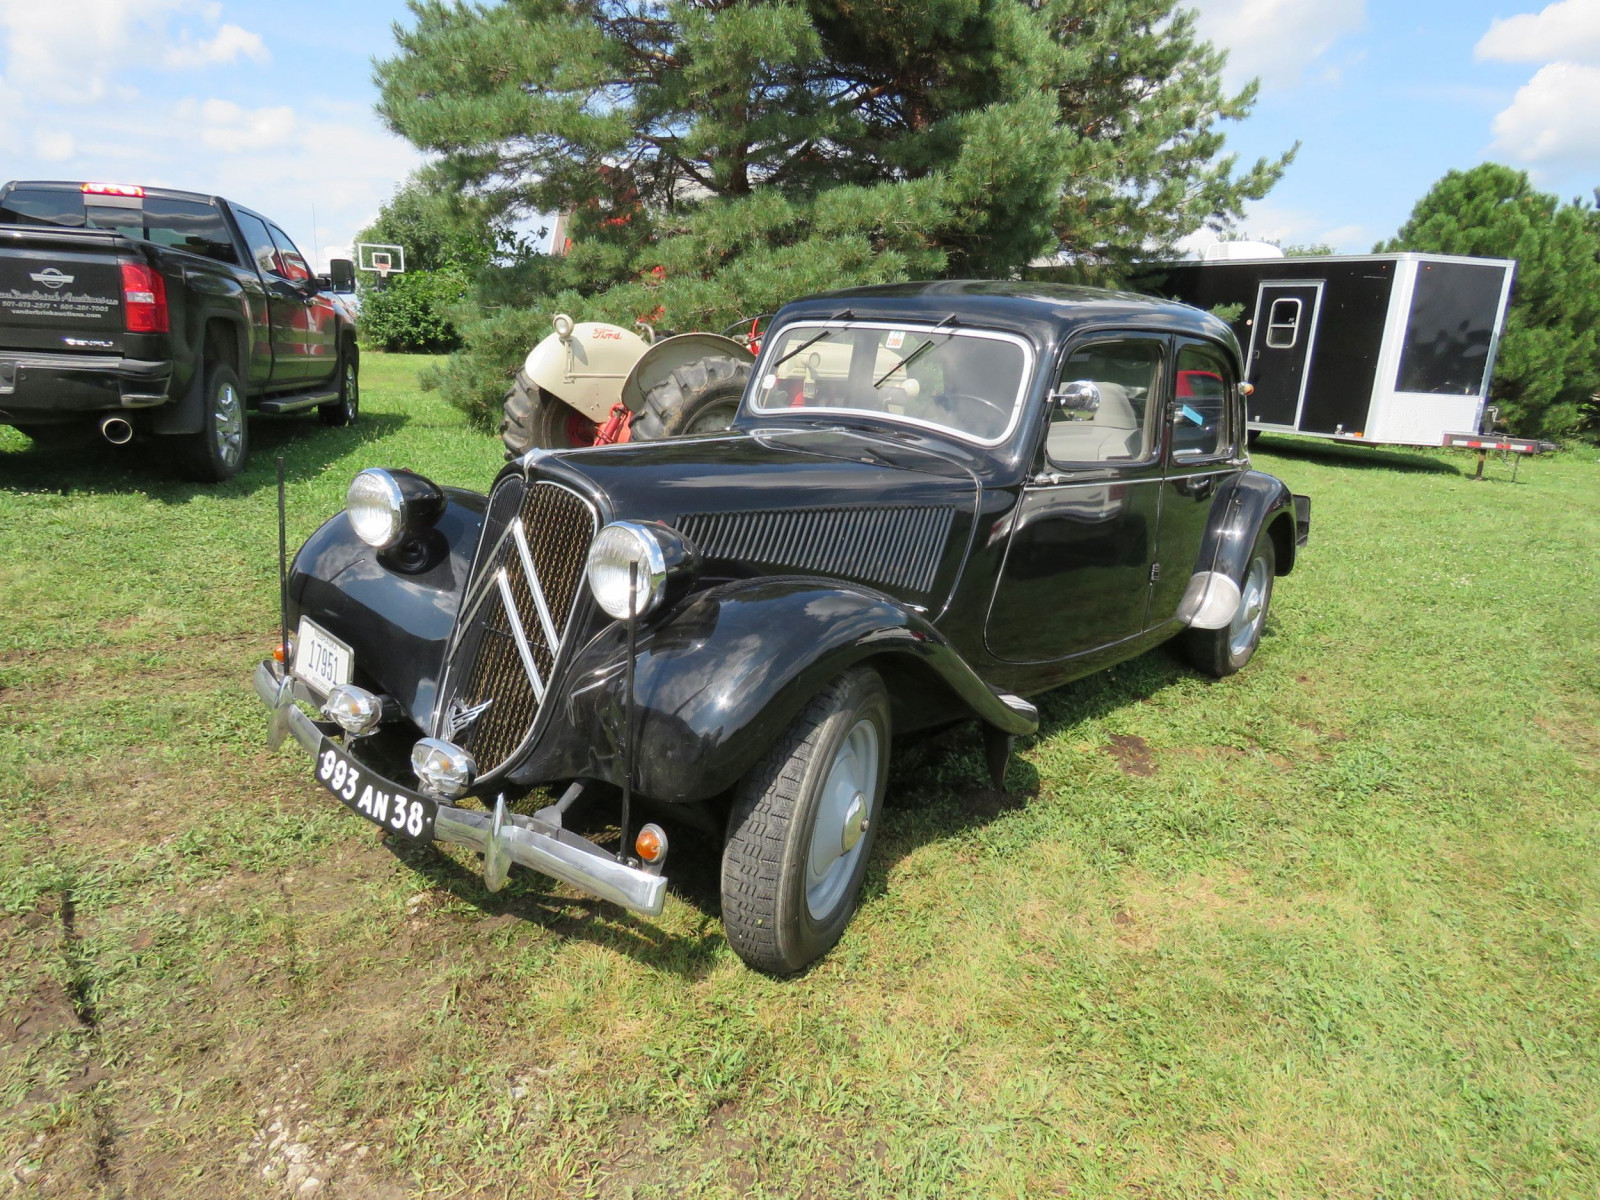 1951 Citroen Traction Avant 4dr Sedan - Image 2